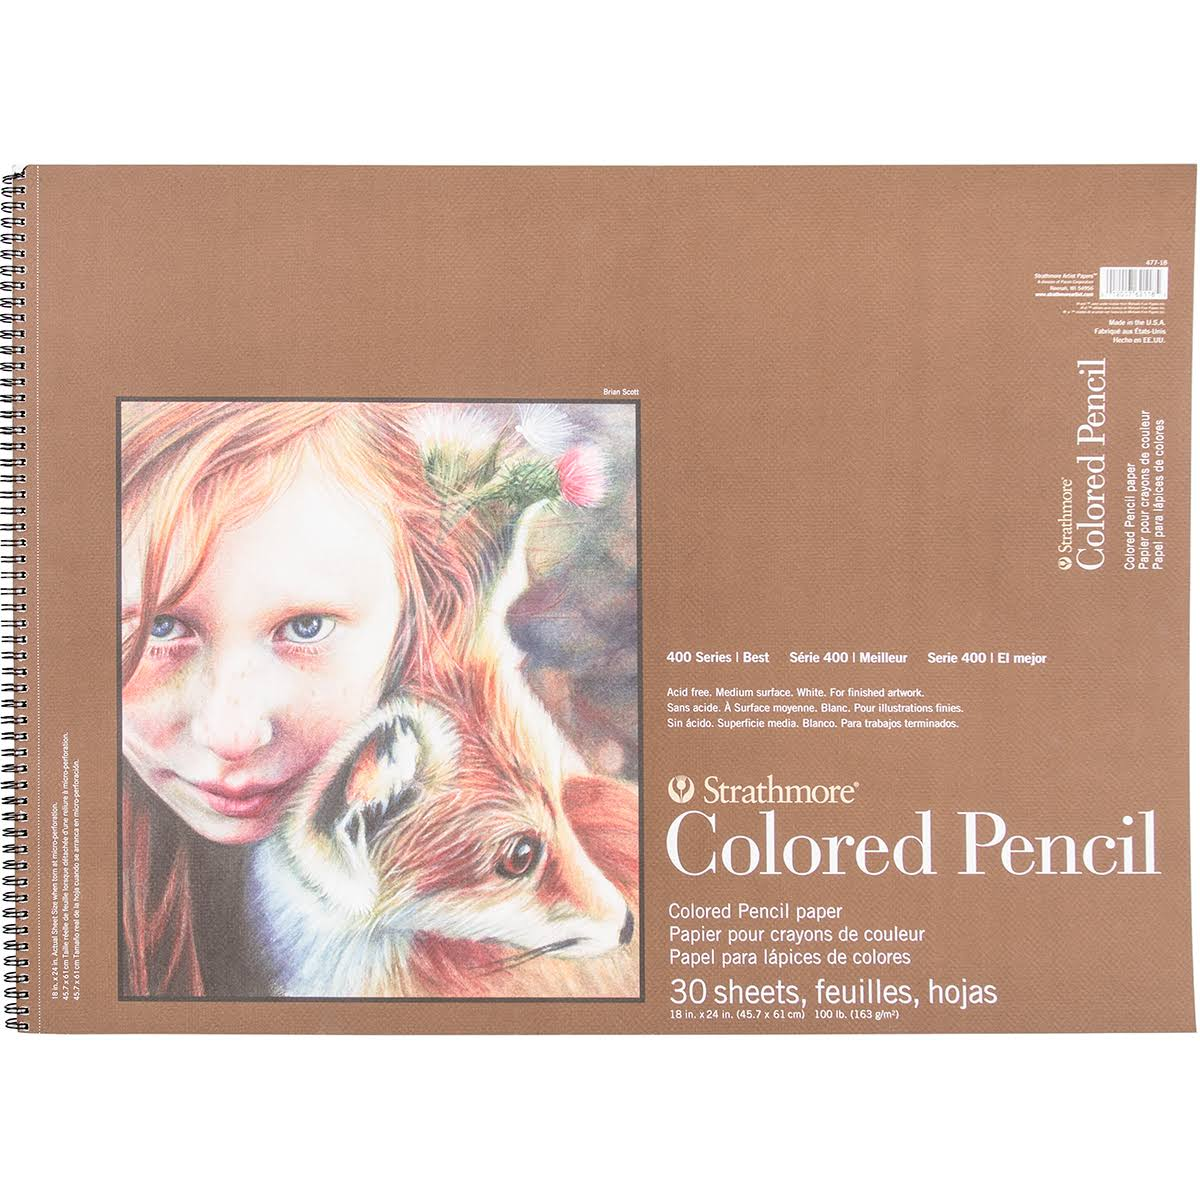 "Strathmore Colored Pencil Spiral Paper Pad - 18""x24"", 30 Sheets"